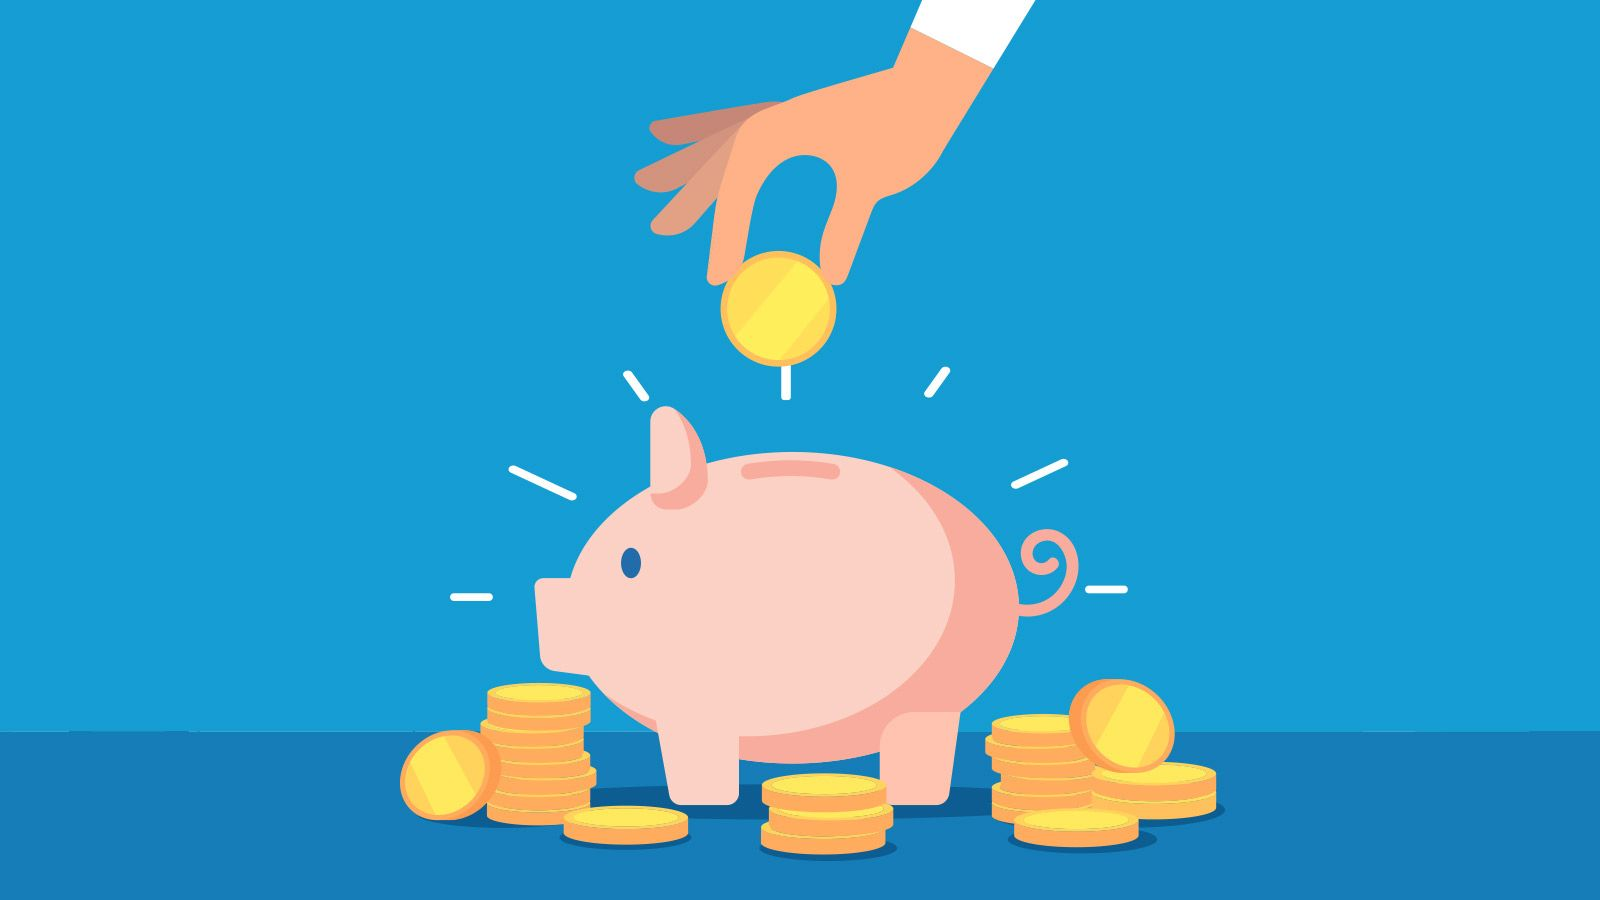 The Marketing Costs You Need to Factor into Your Crowdfunding Budget